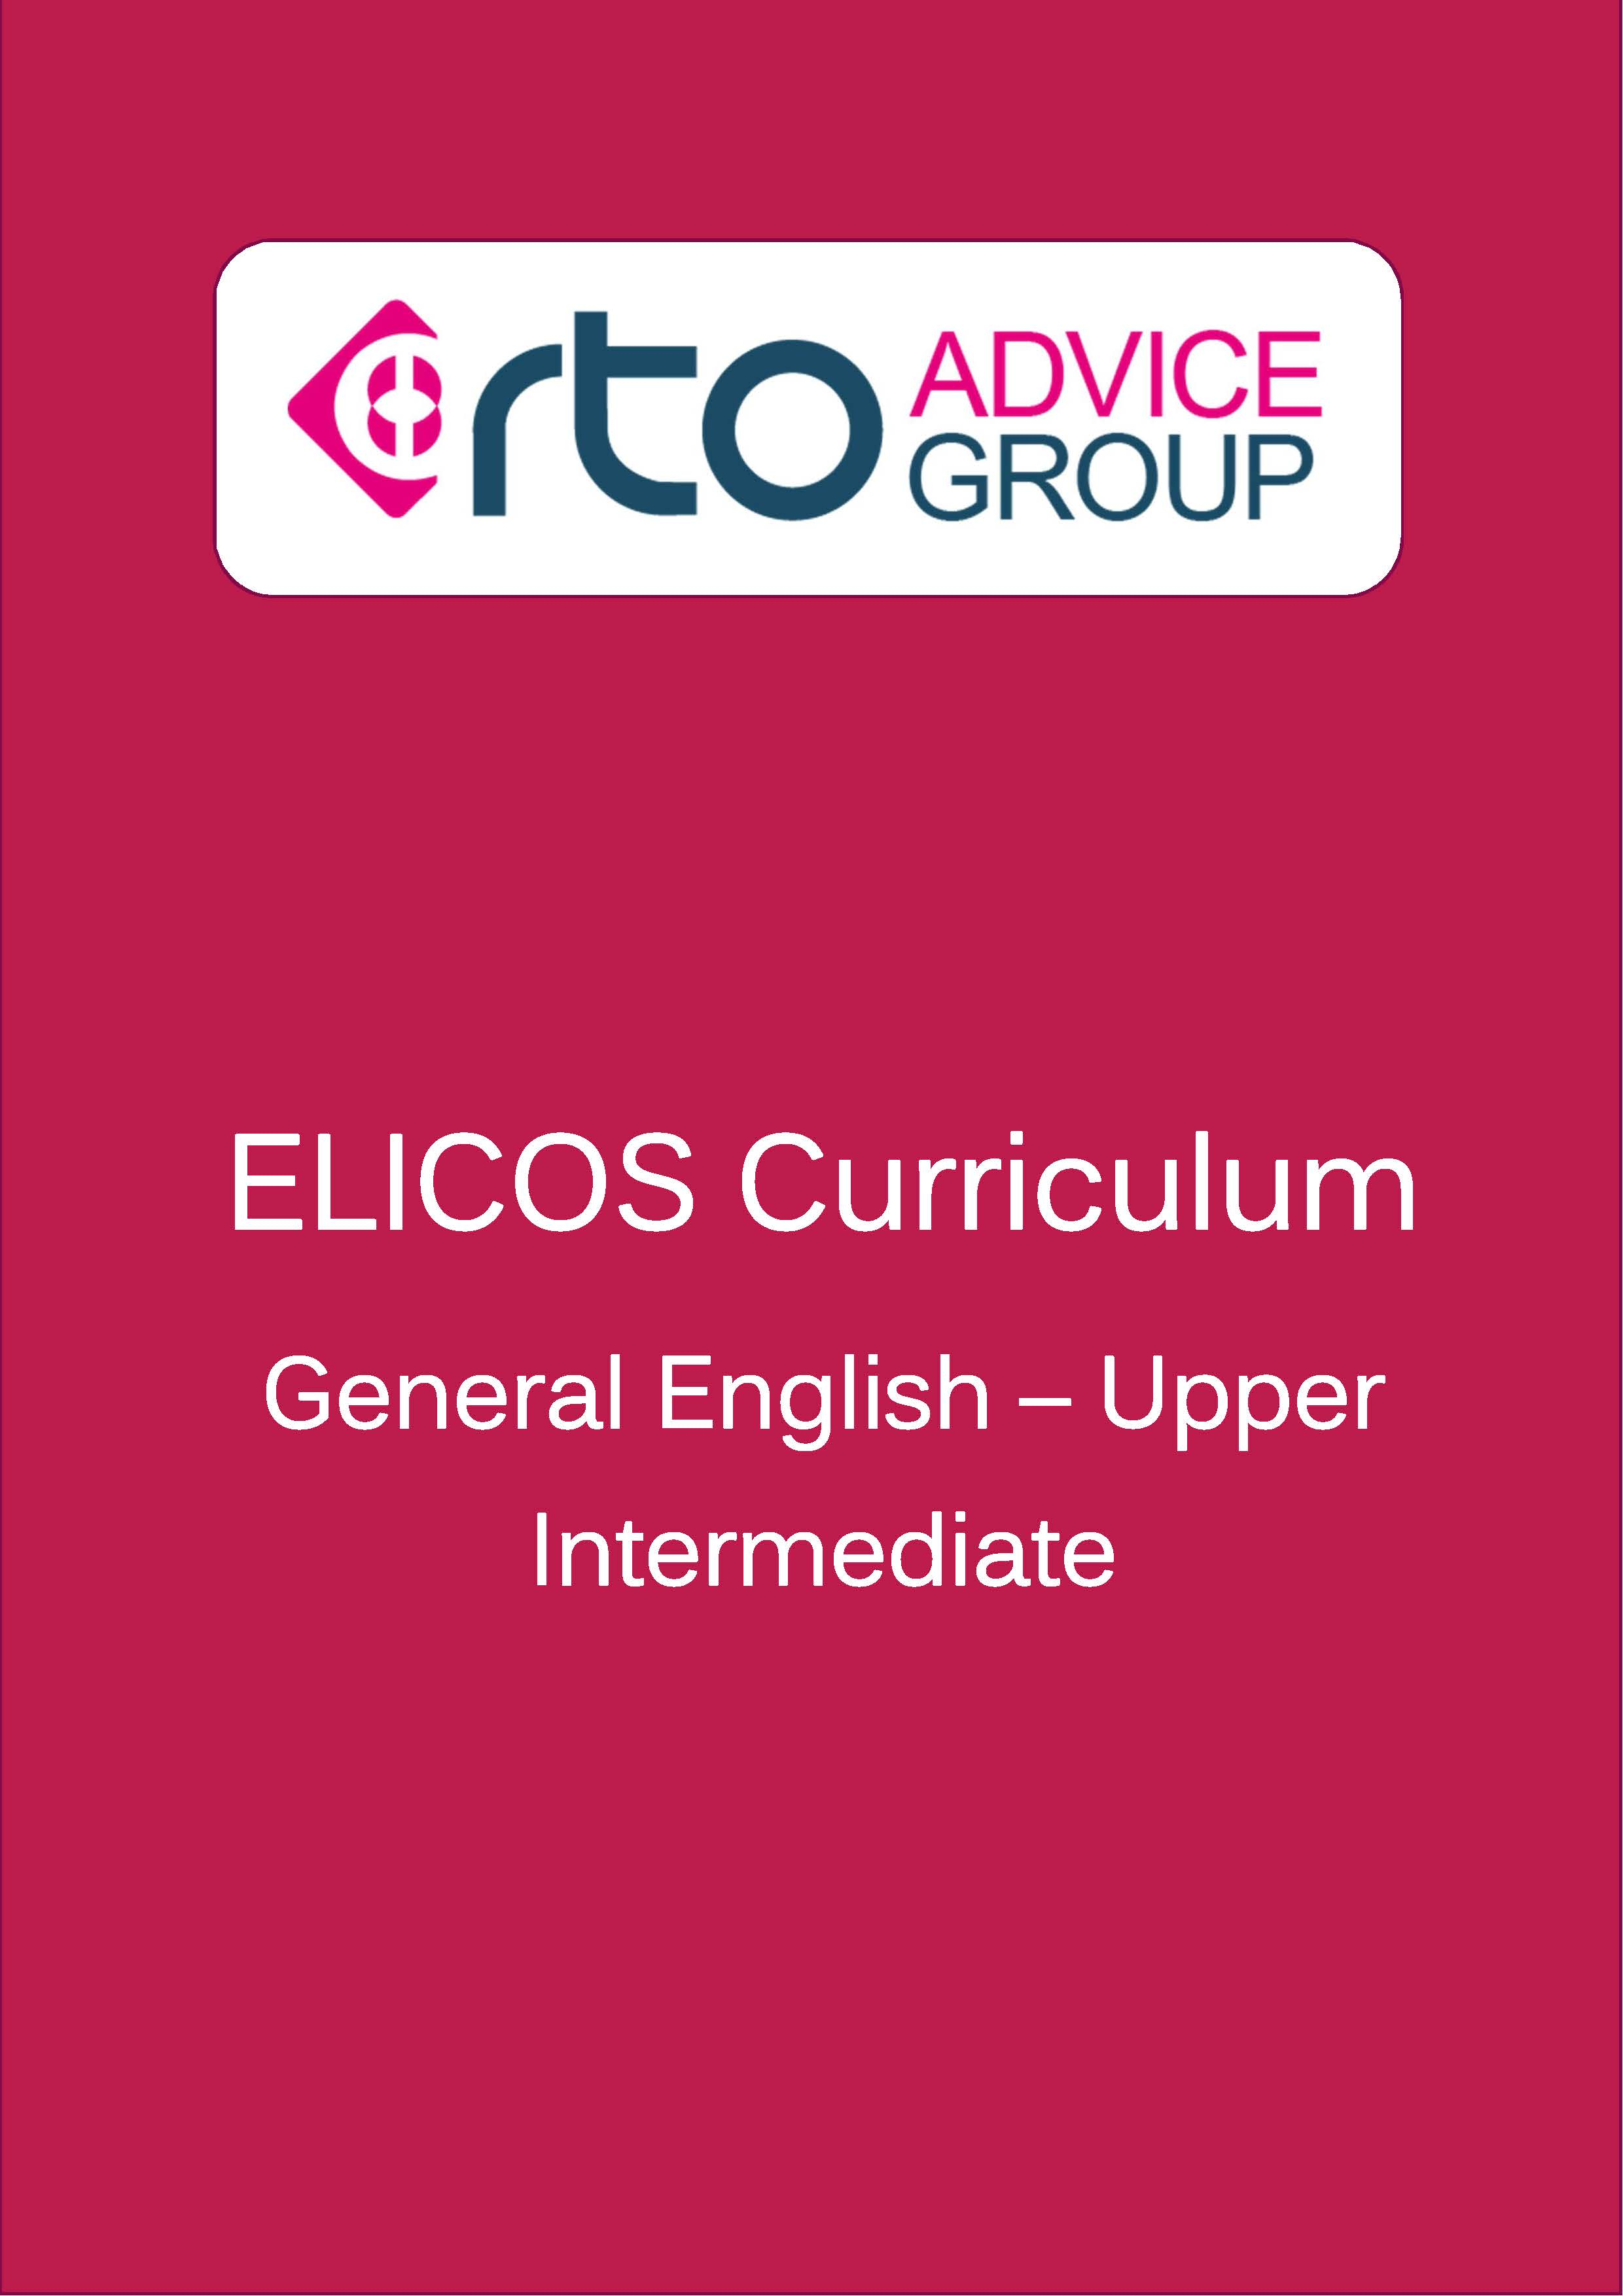 ELICOS Curriculum – General English Upper Intermediate